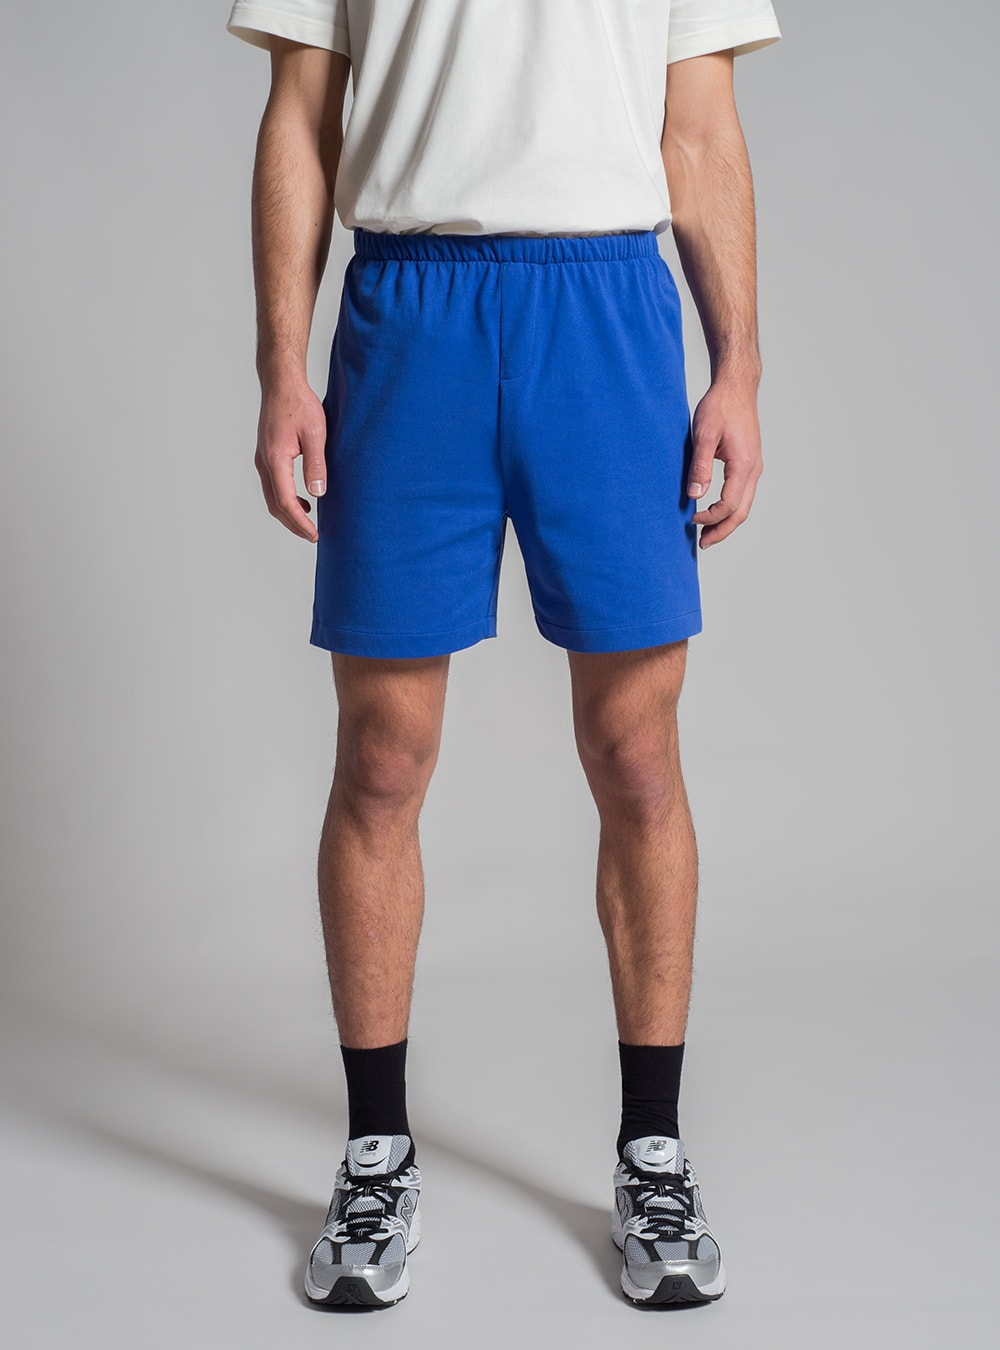 Relaxed jersey shorts (blue) made in Portugal by wetheknot